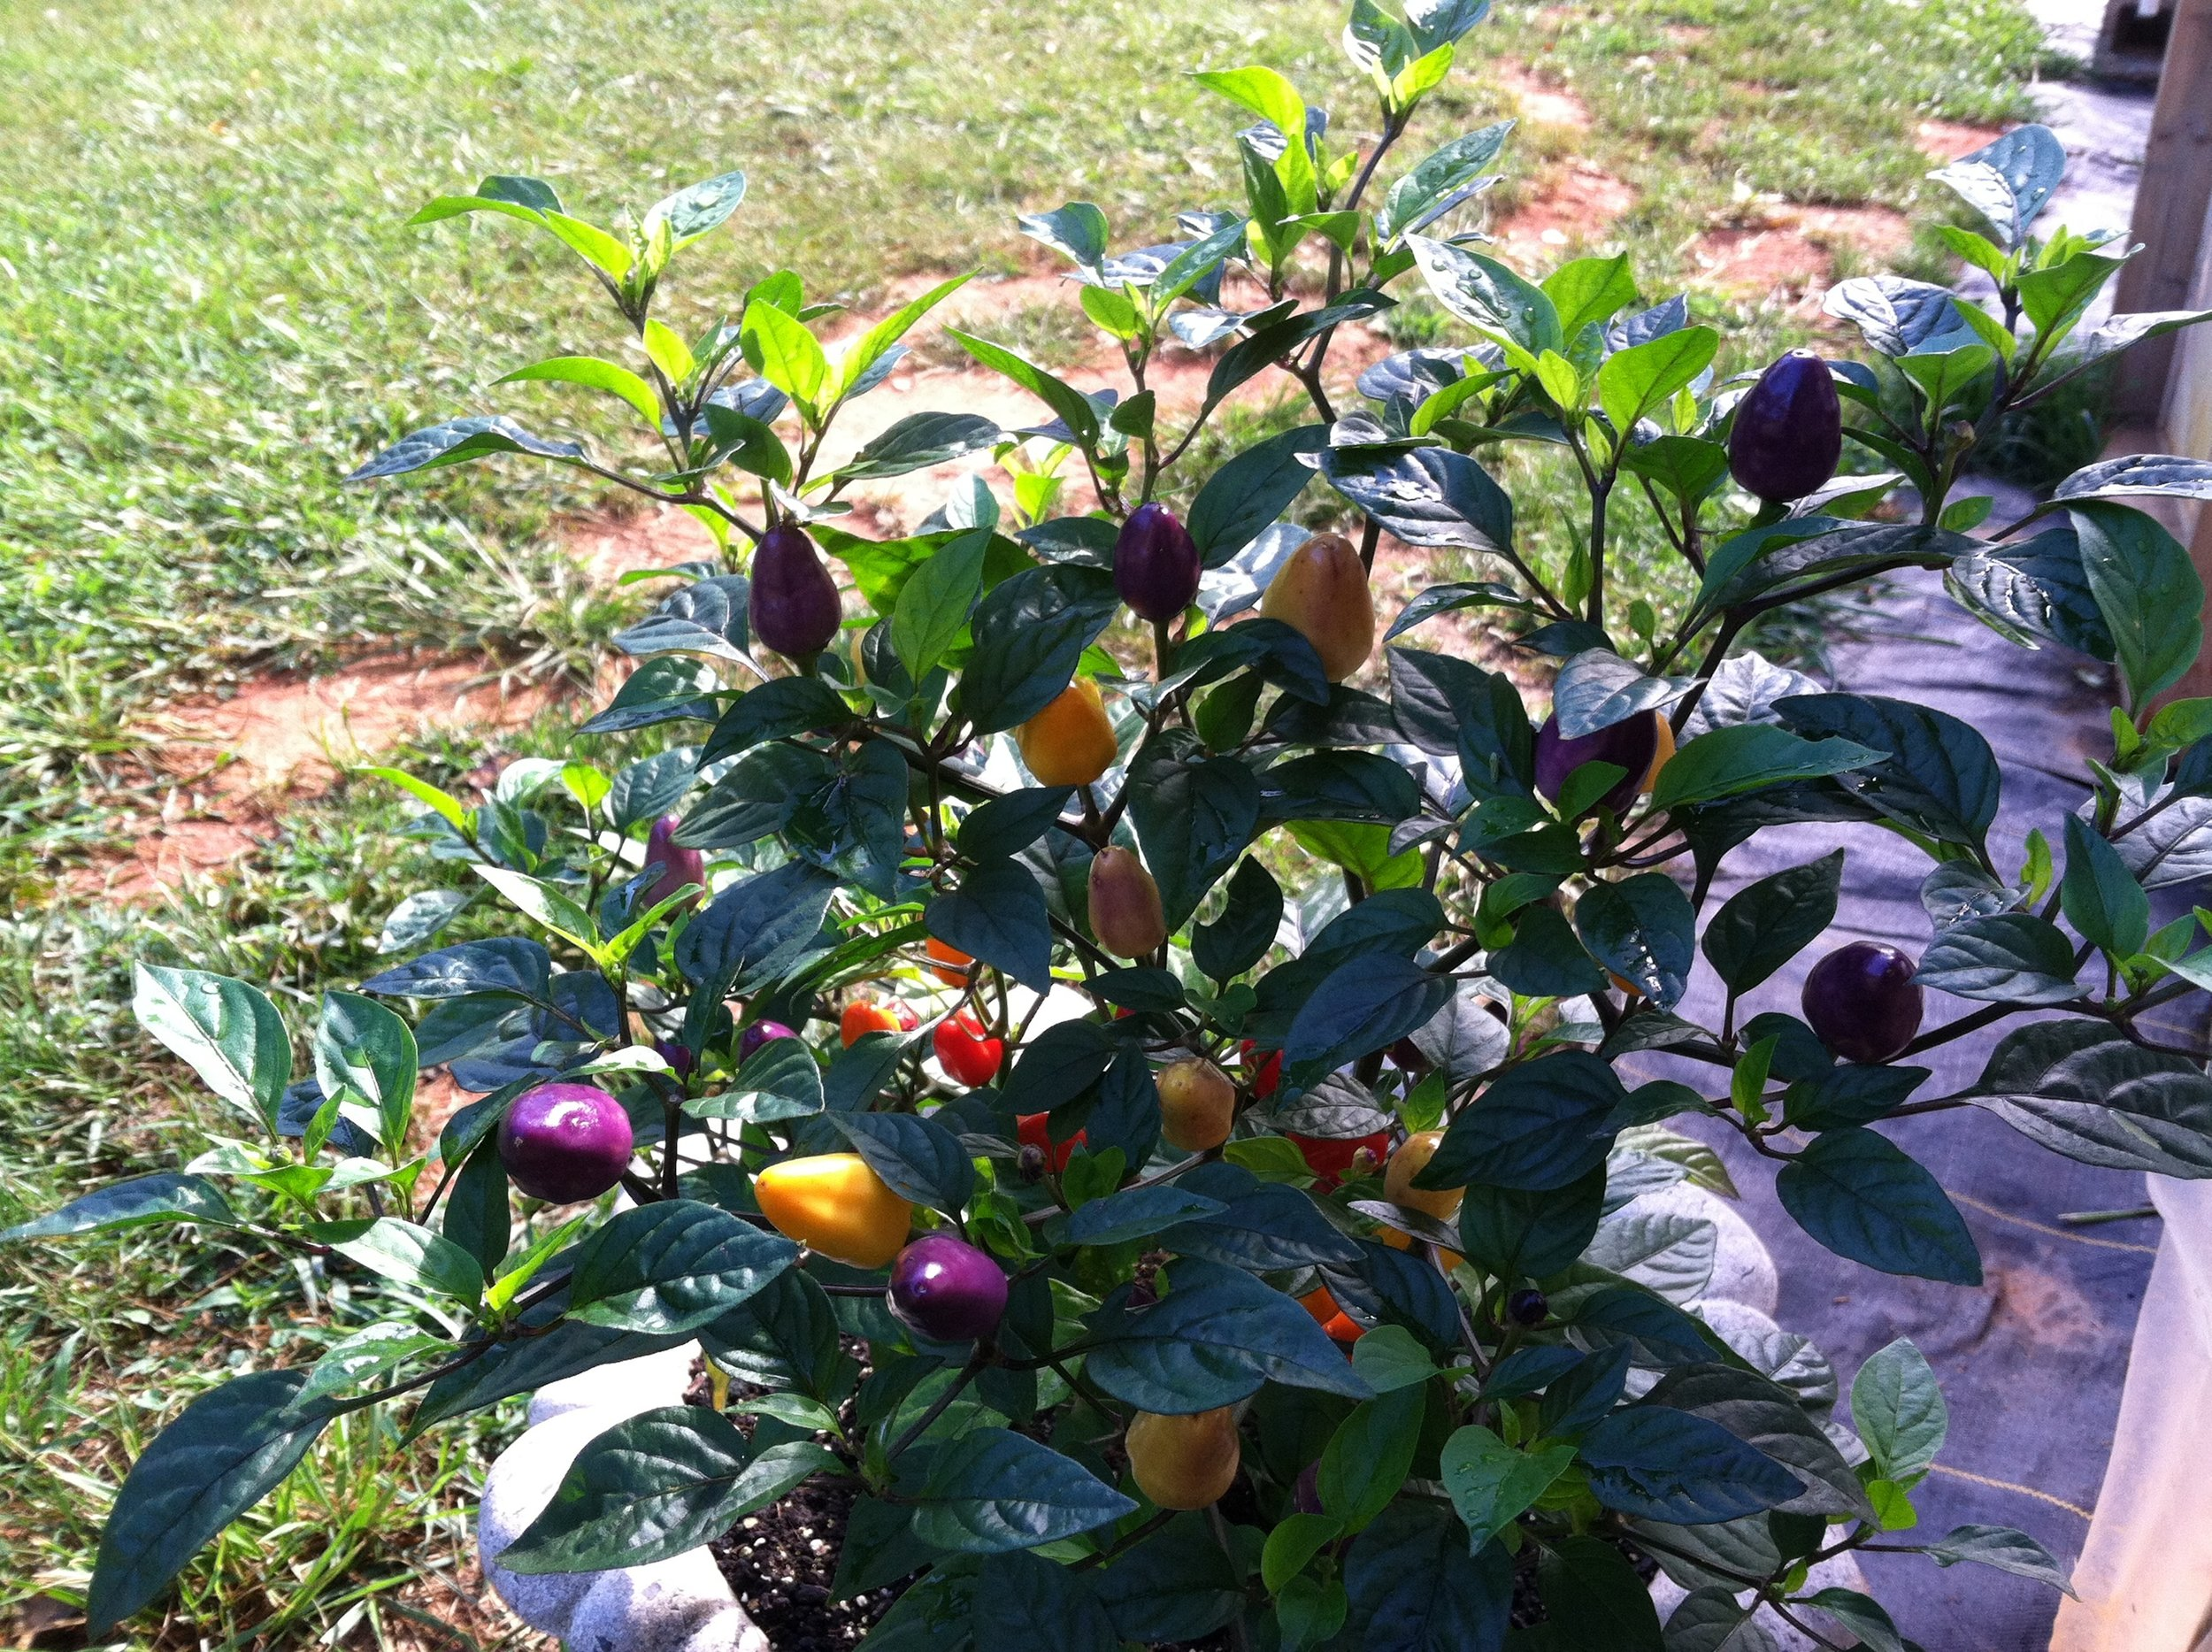 'Chinese Five Color' hot pepper. More hot peppers from the field this week.